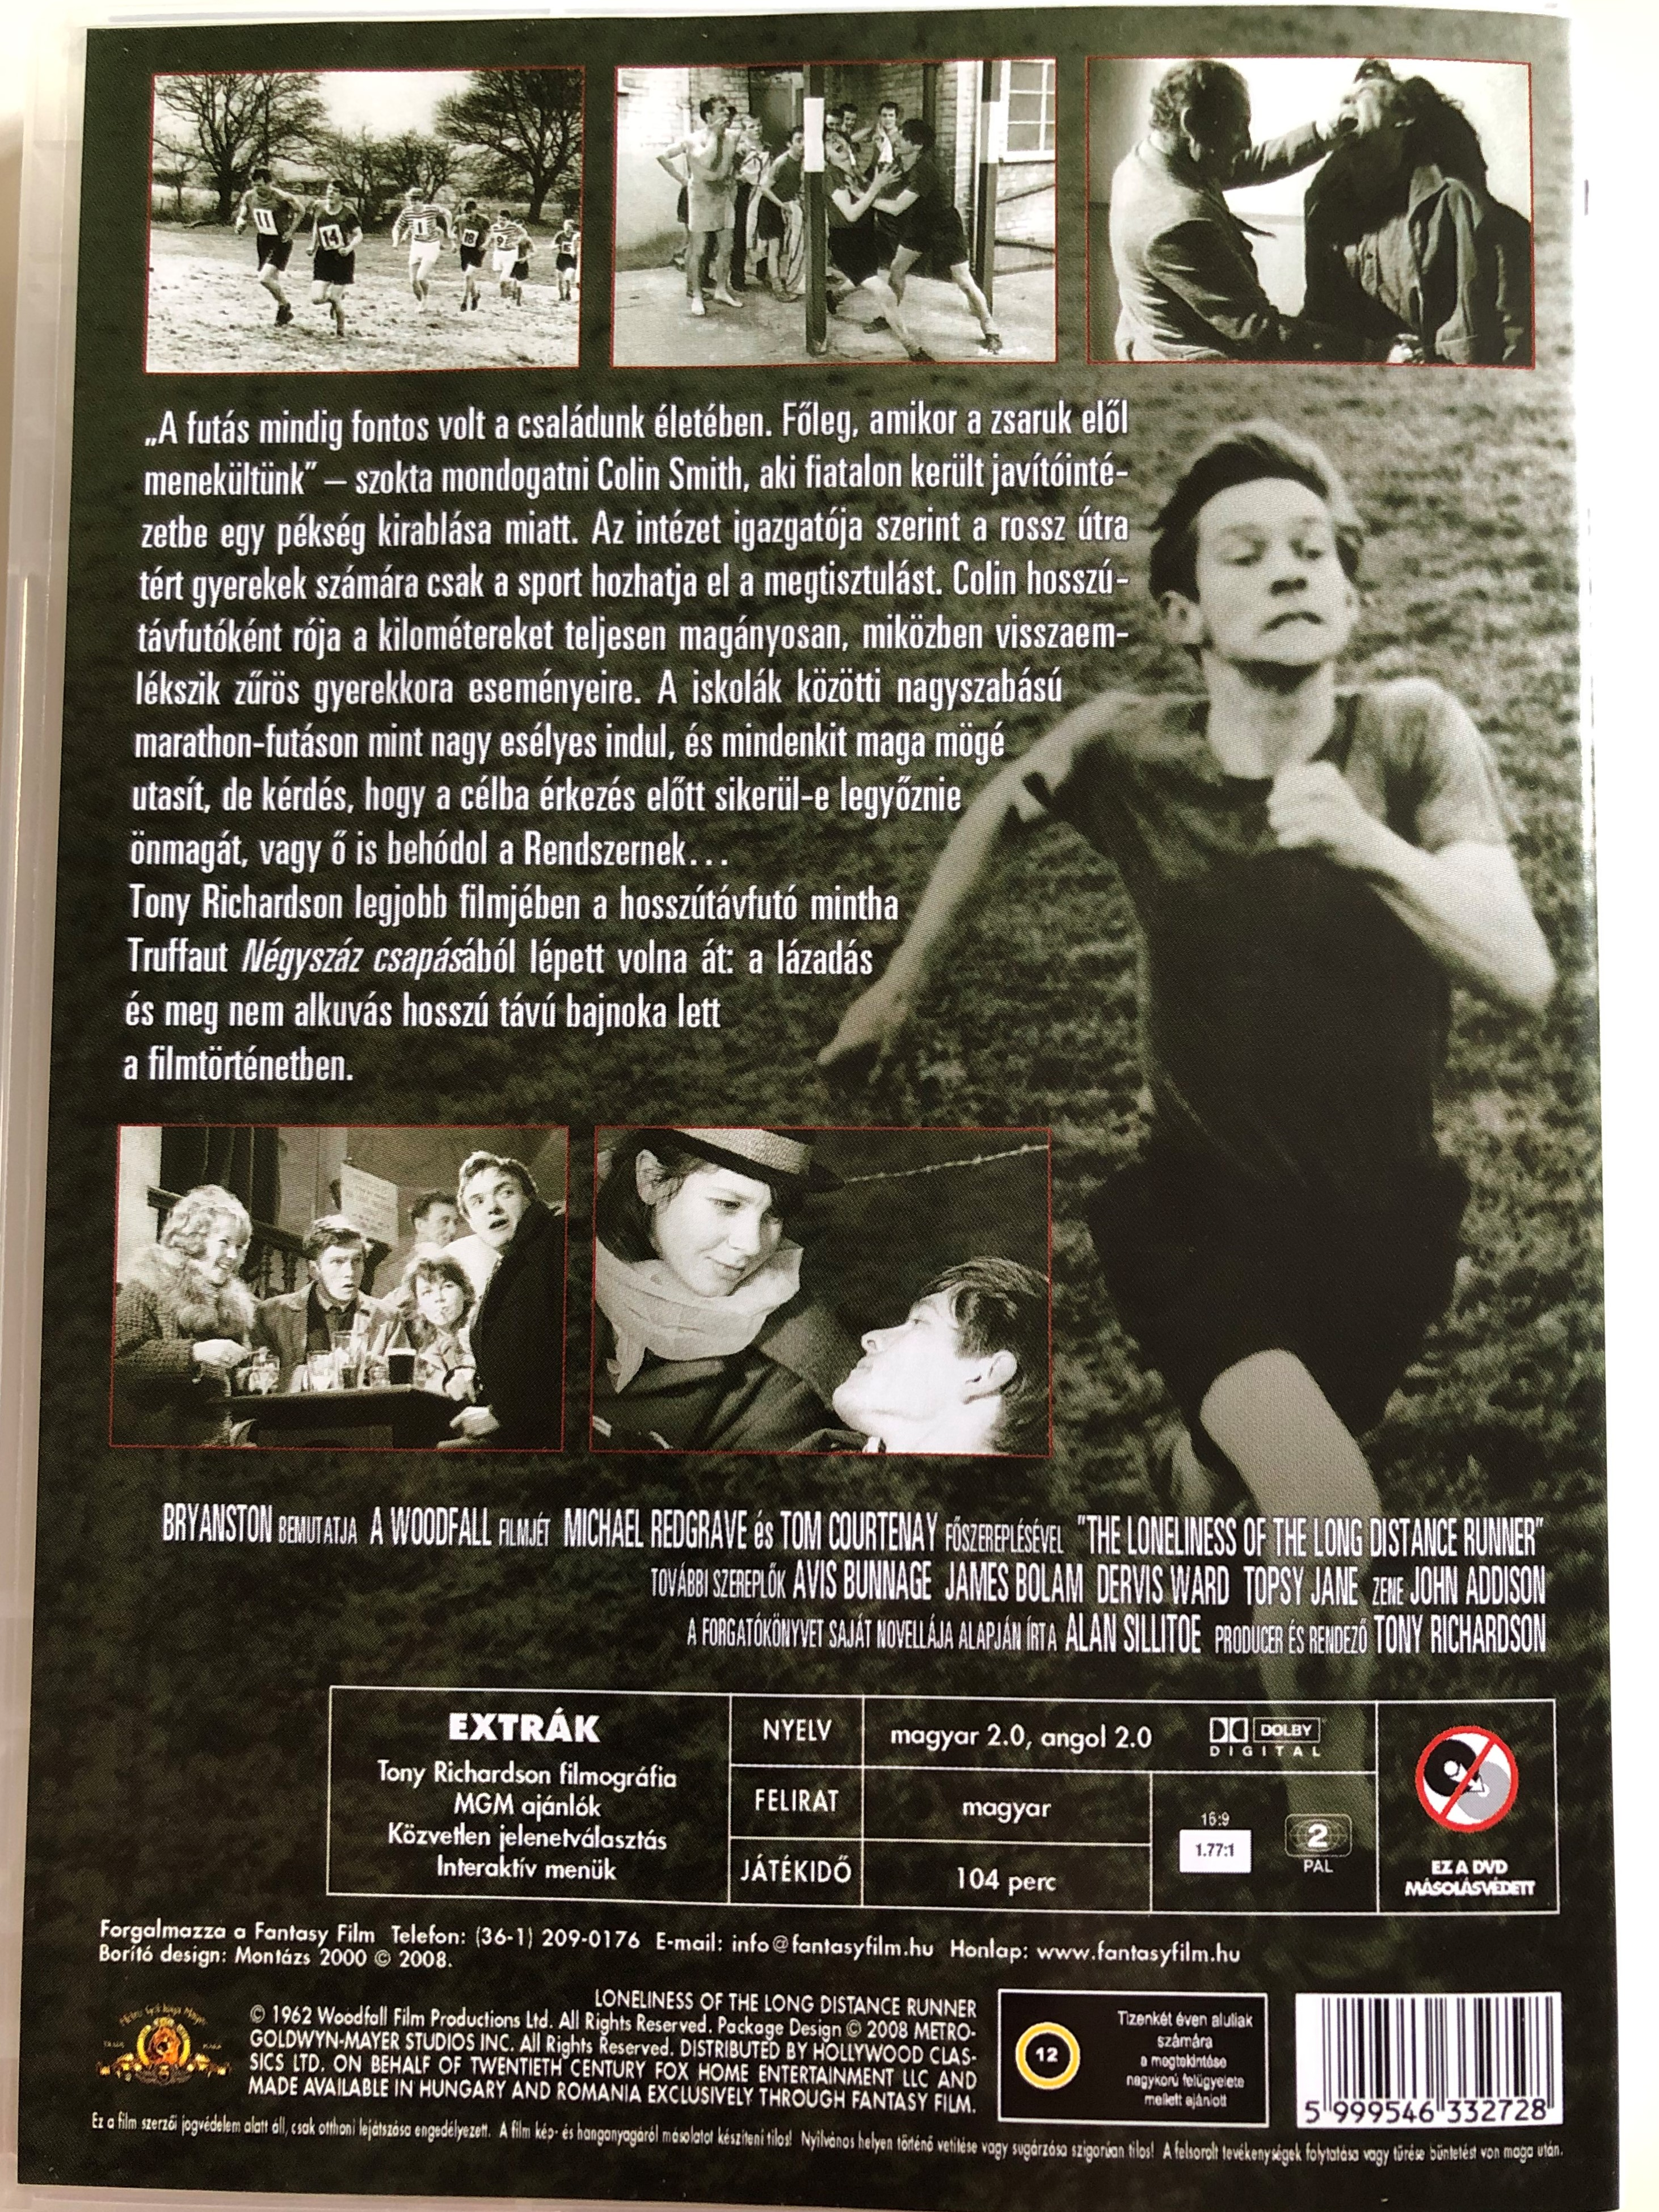 the-loneliness-of-the-long-distance-runner-dvd-1982-a-hossz-t-vfut-mag-nyoss-ga-2.jpg